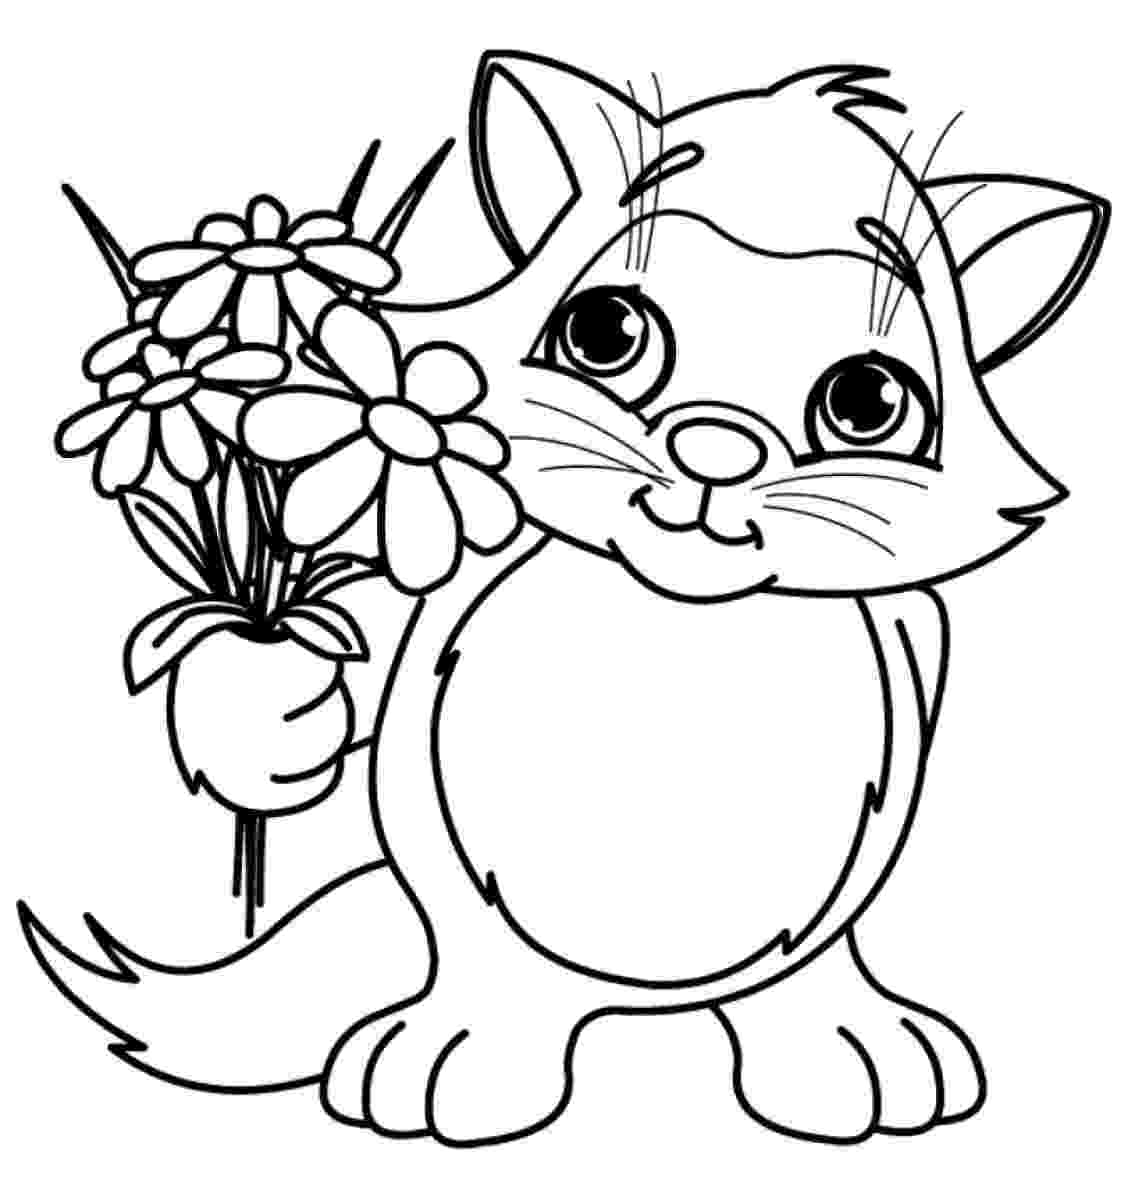 flowers printable coloring pages free printable flower coloring pages for kids best flowers pages coloring printable 1 1